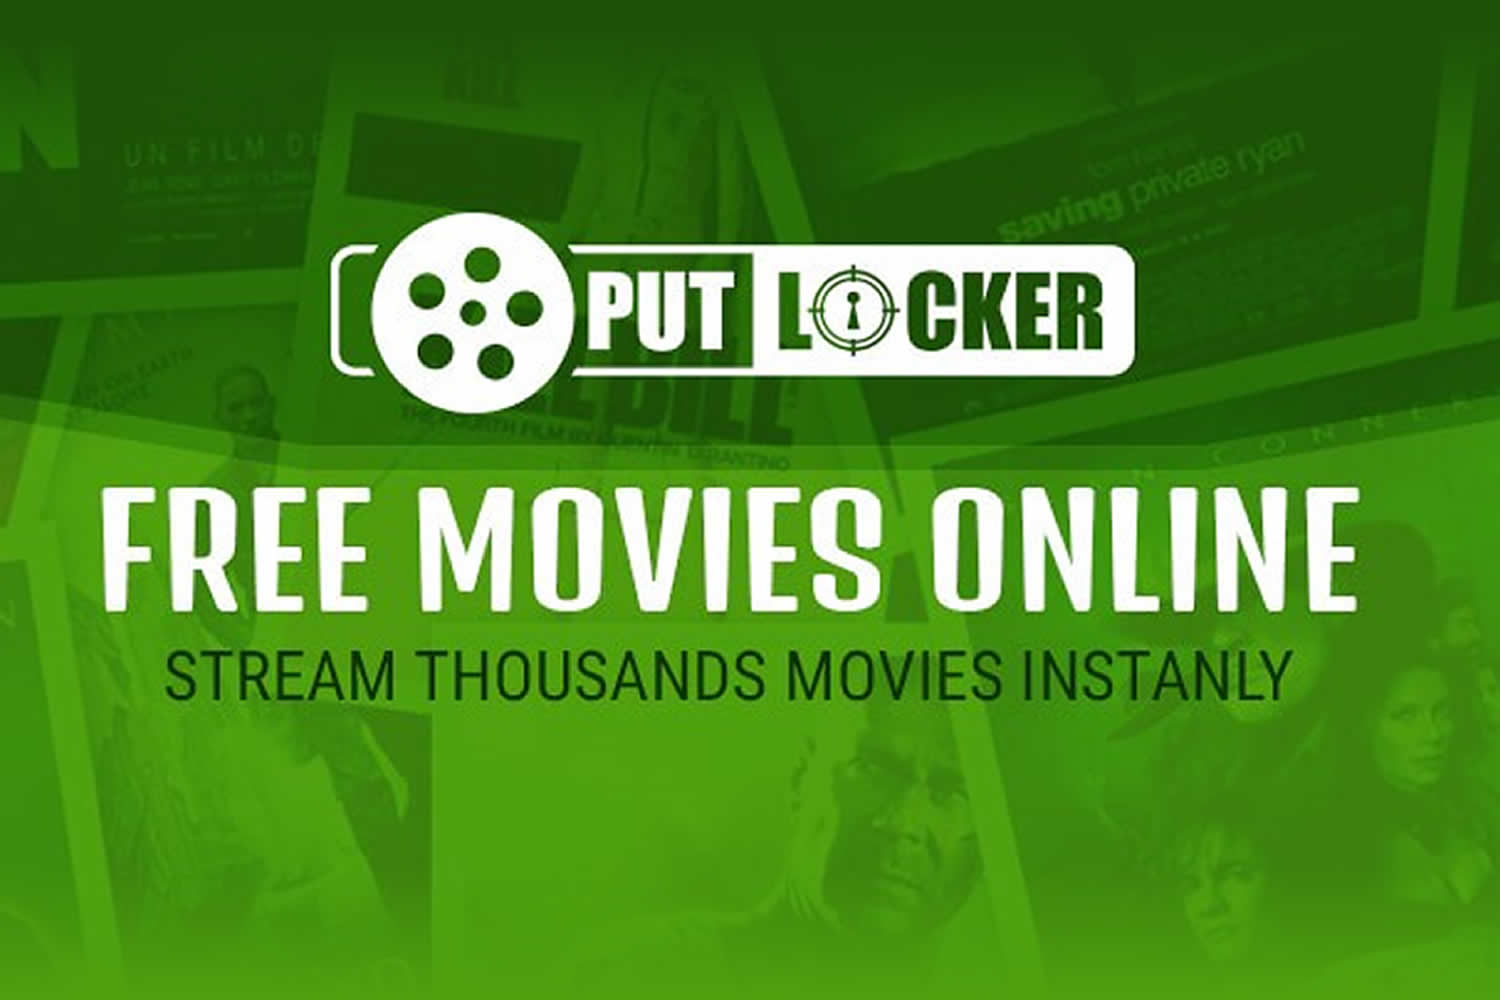 Watch The Slow Business of Going Putlocker Movies